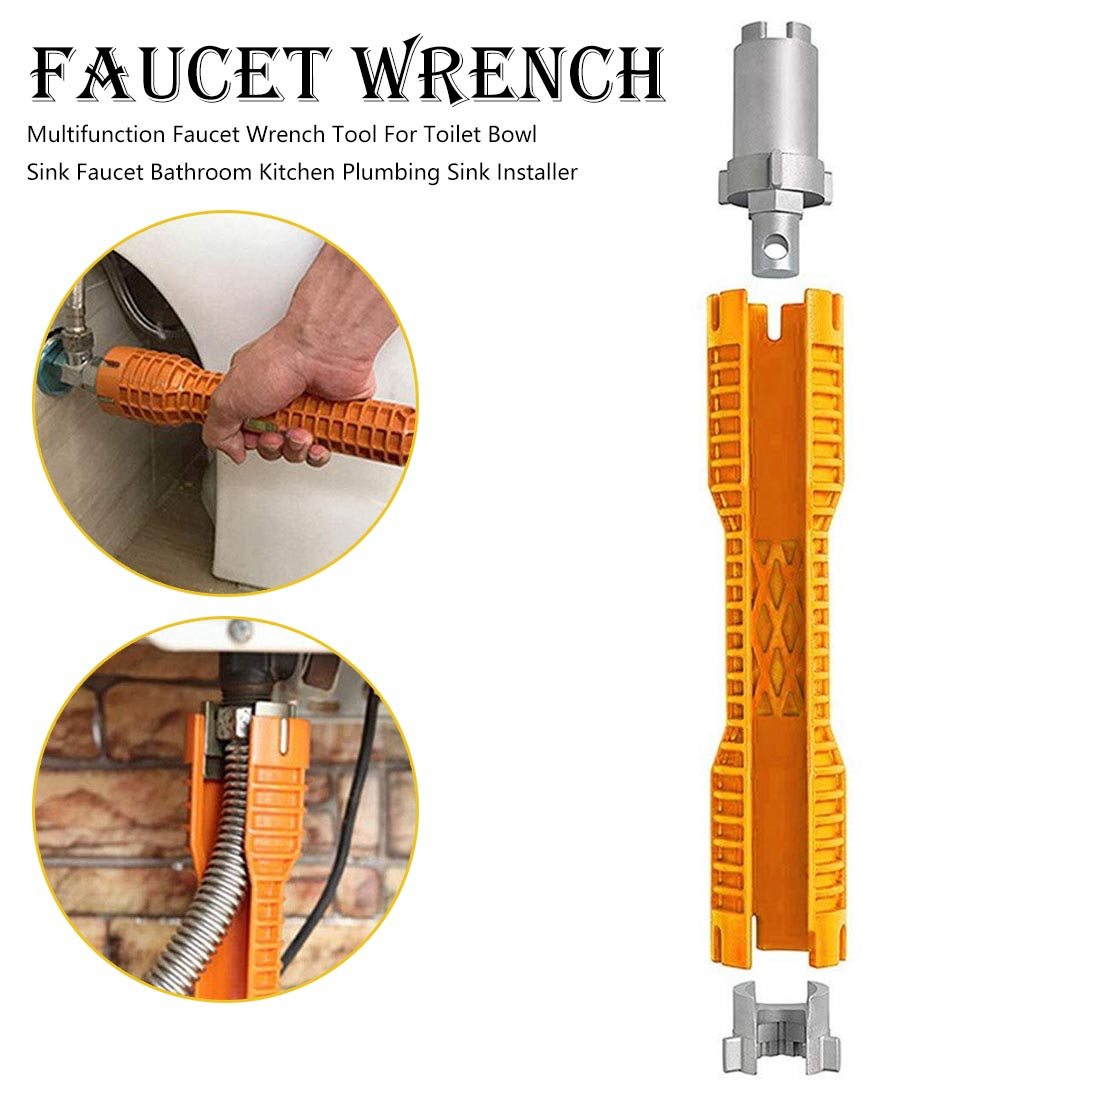 Multifunction Faucet Wrench Tool For Toilet Bowl Sink Faucet Bathroom Kitchen Plumbing Sink Installer  Spanner Installer Tools